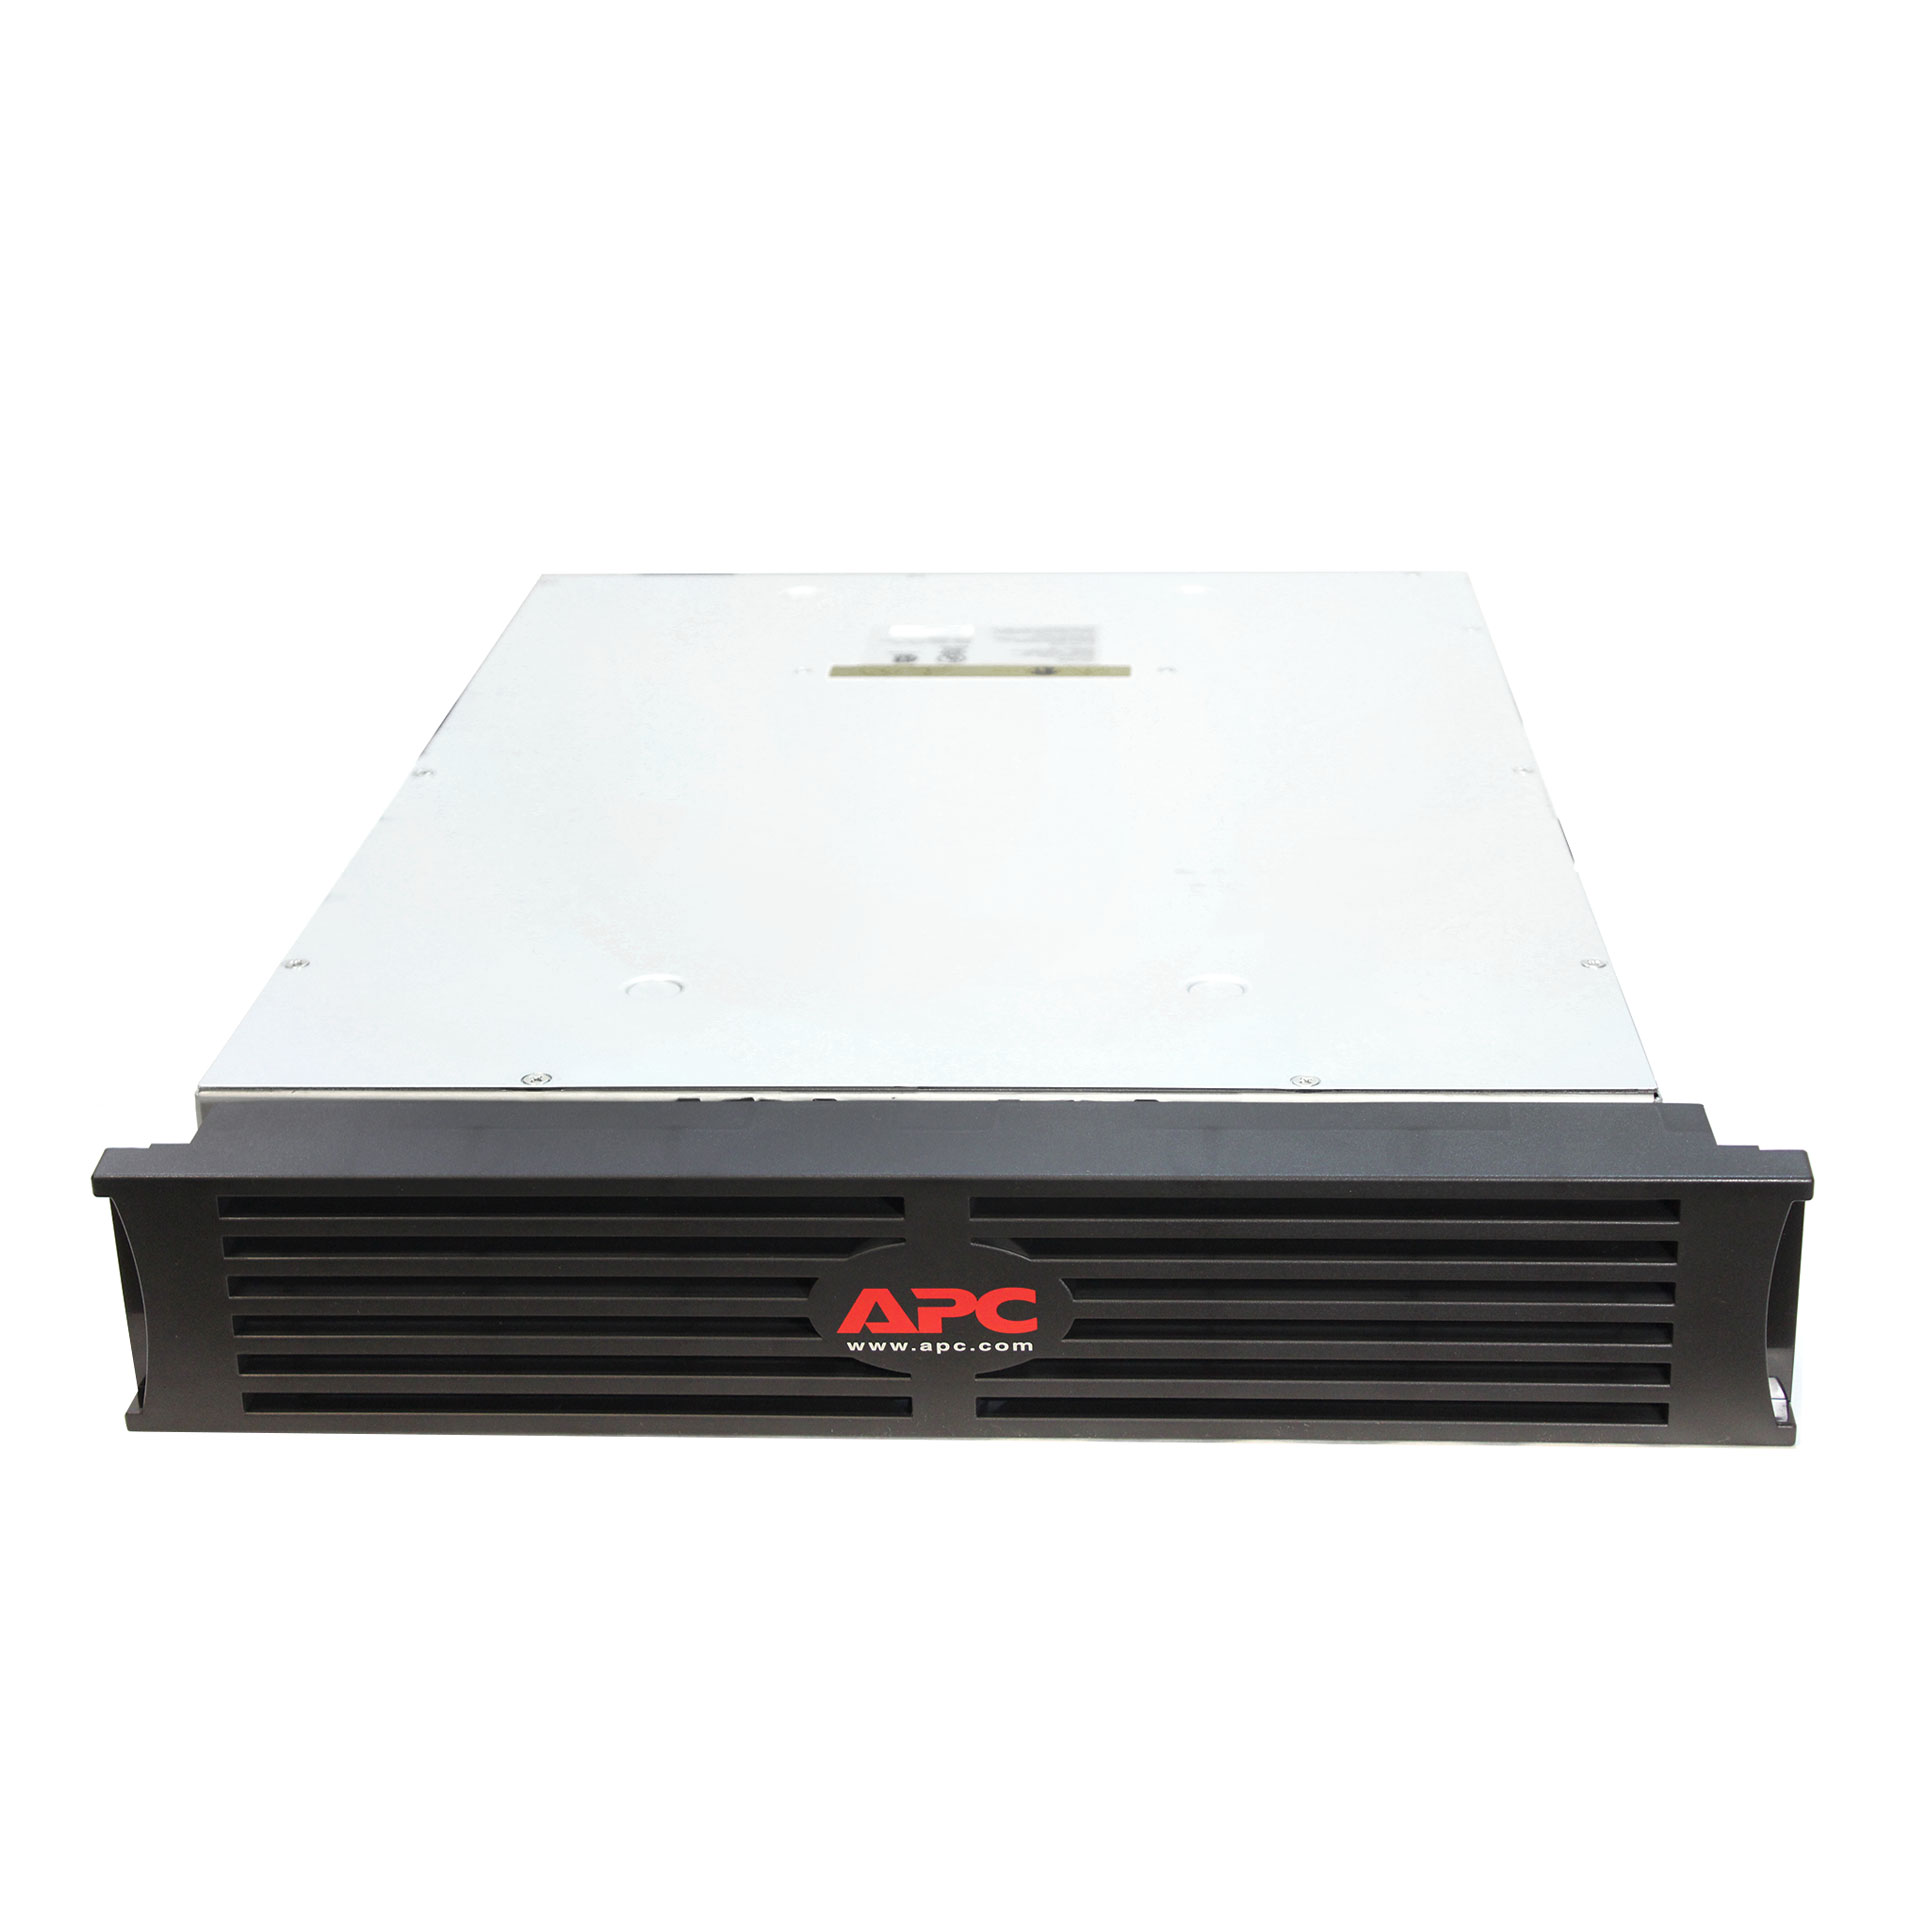 APC AP9627 Step-Down Transformer RM 2U 5000VA 208V IN 120V OUT